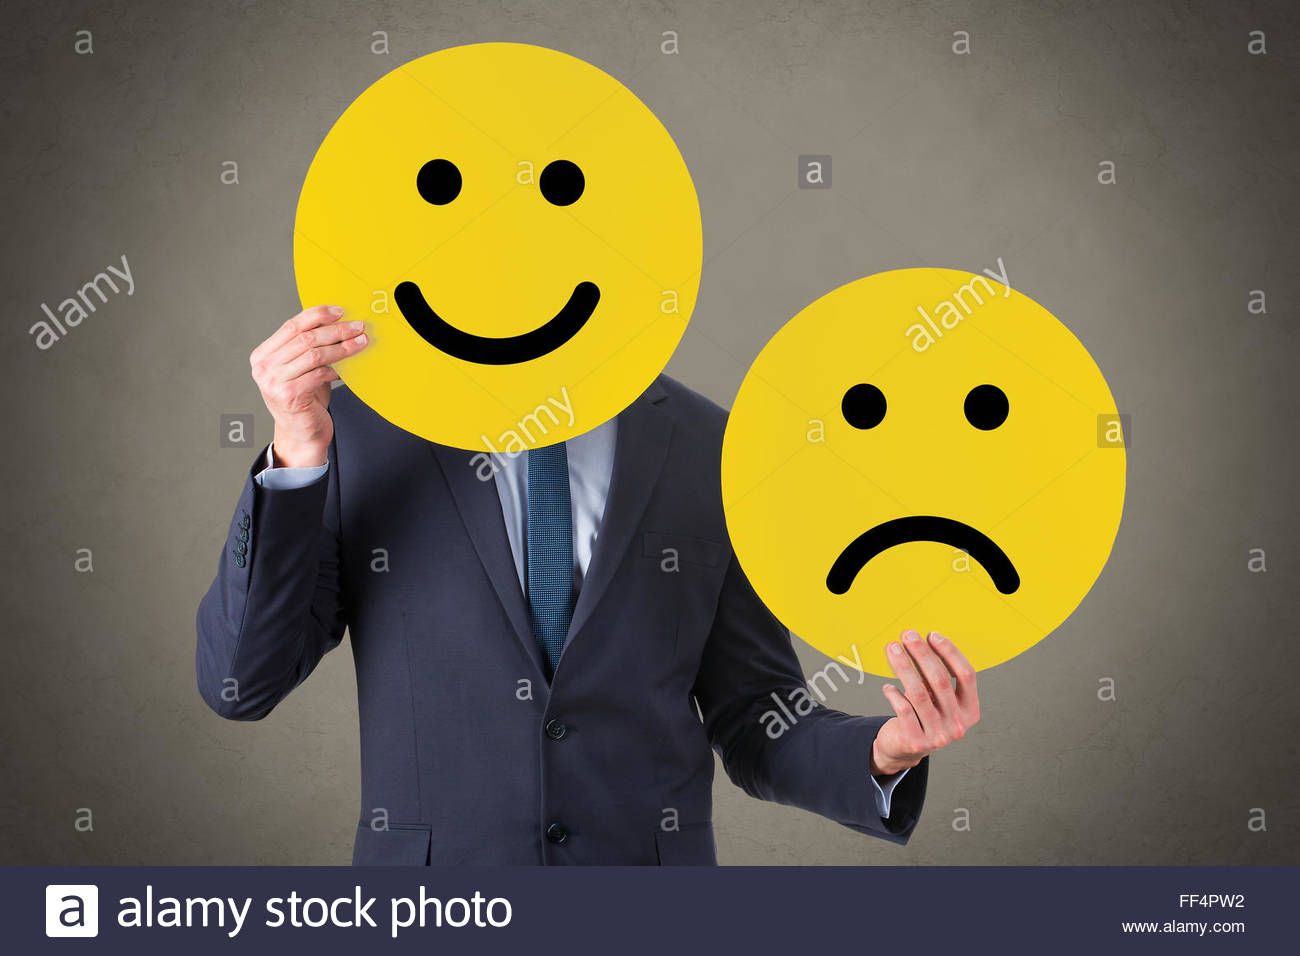 Unhappy and Happy Smile - Stock Image